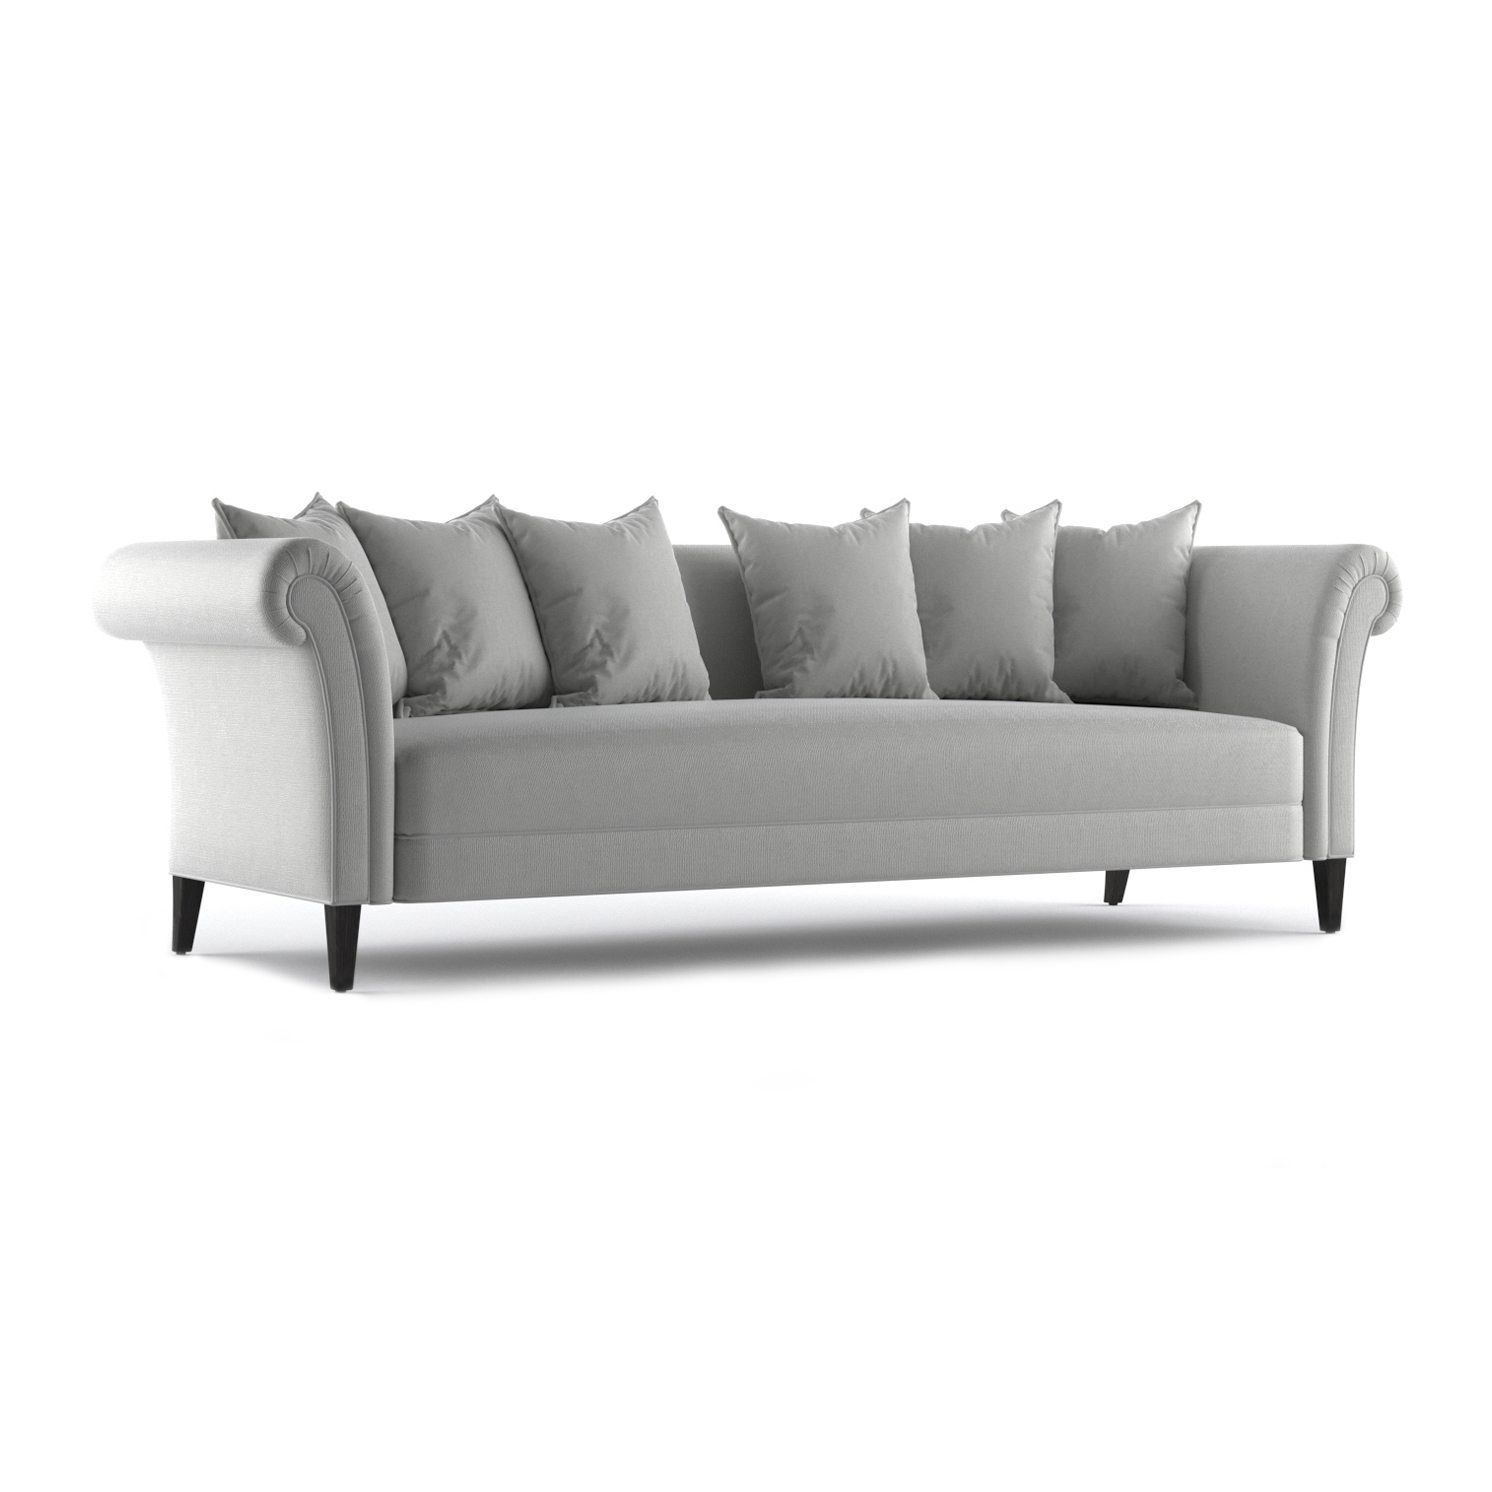 Baker Three and a Half Seater Sofa by Bonham & Bonham 12